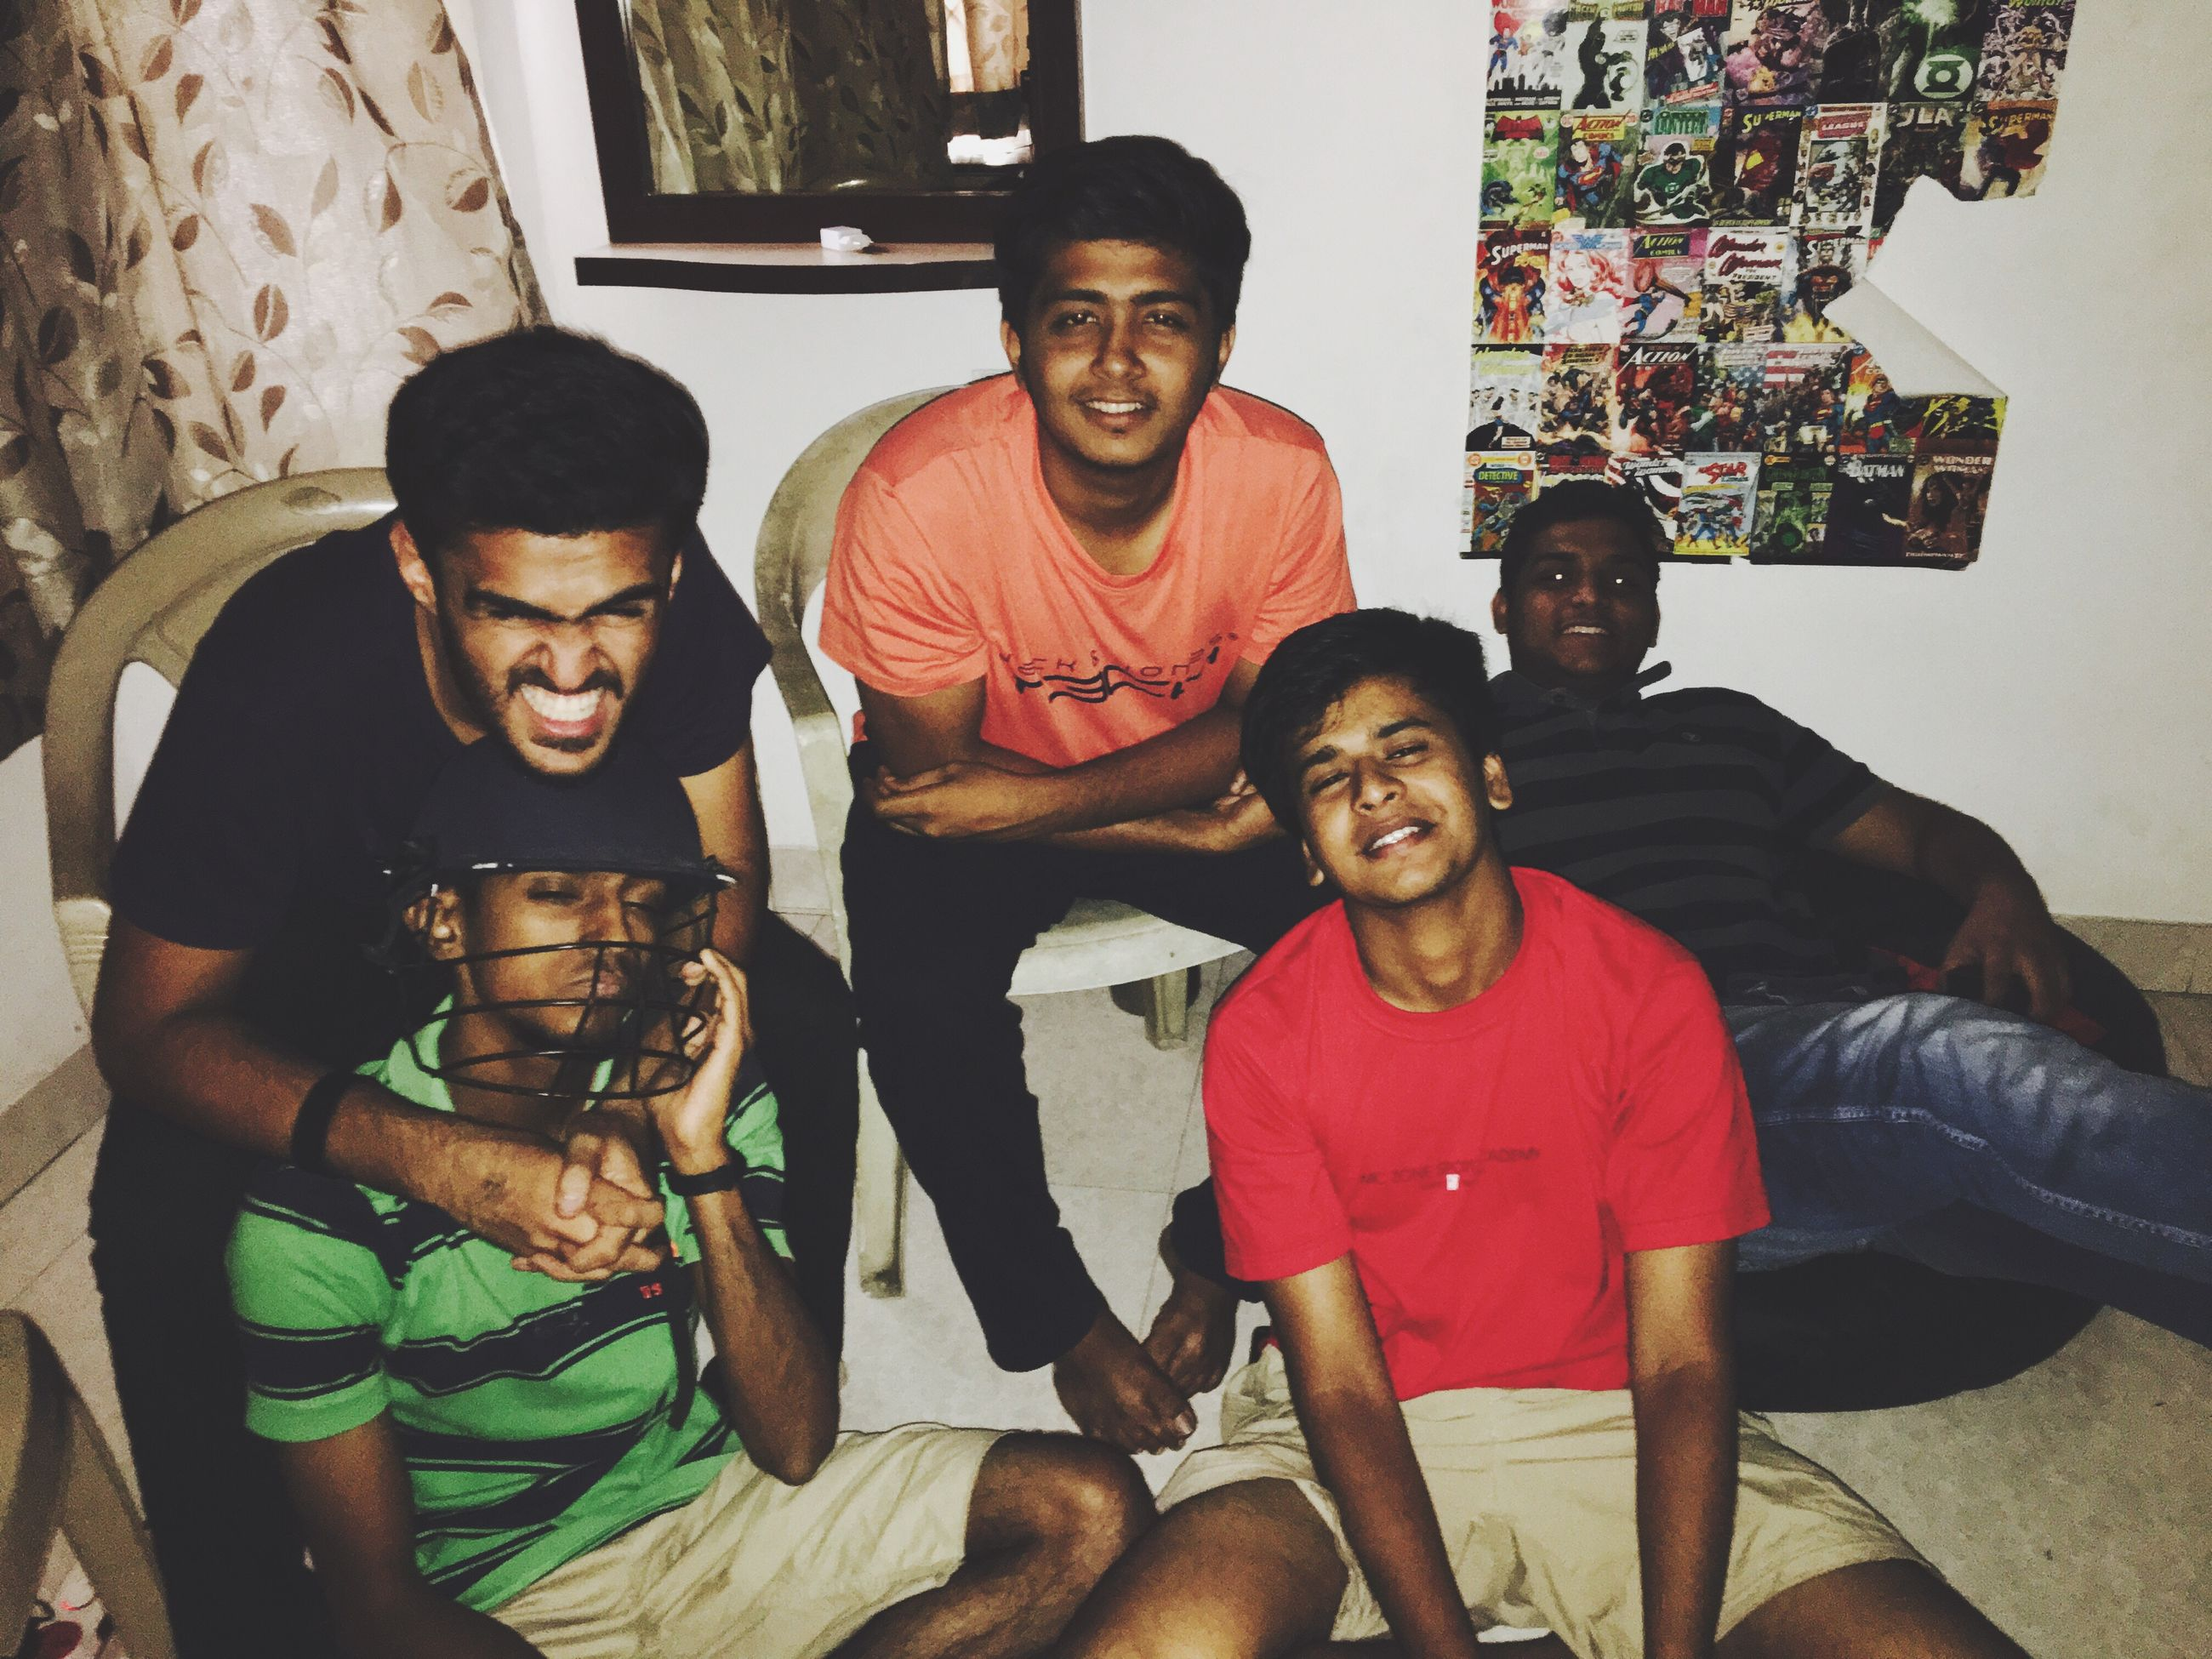 looking at camera, portrait, young adult, young men, togetherness, leisure activity, lifestyles, front view, person, standing, bonding, smiling, love, sitting, casual clothing, three quarter length, happiness, friendship, teenage boys, handsome, looking, confidence